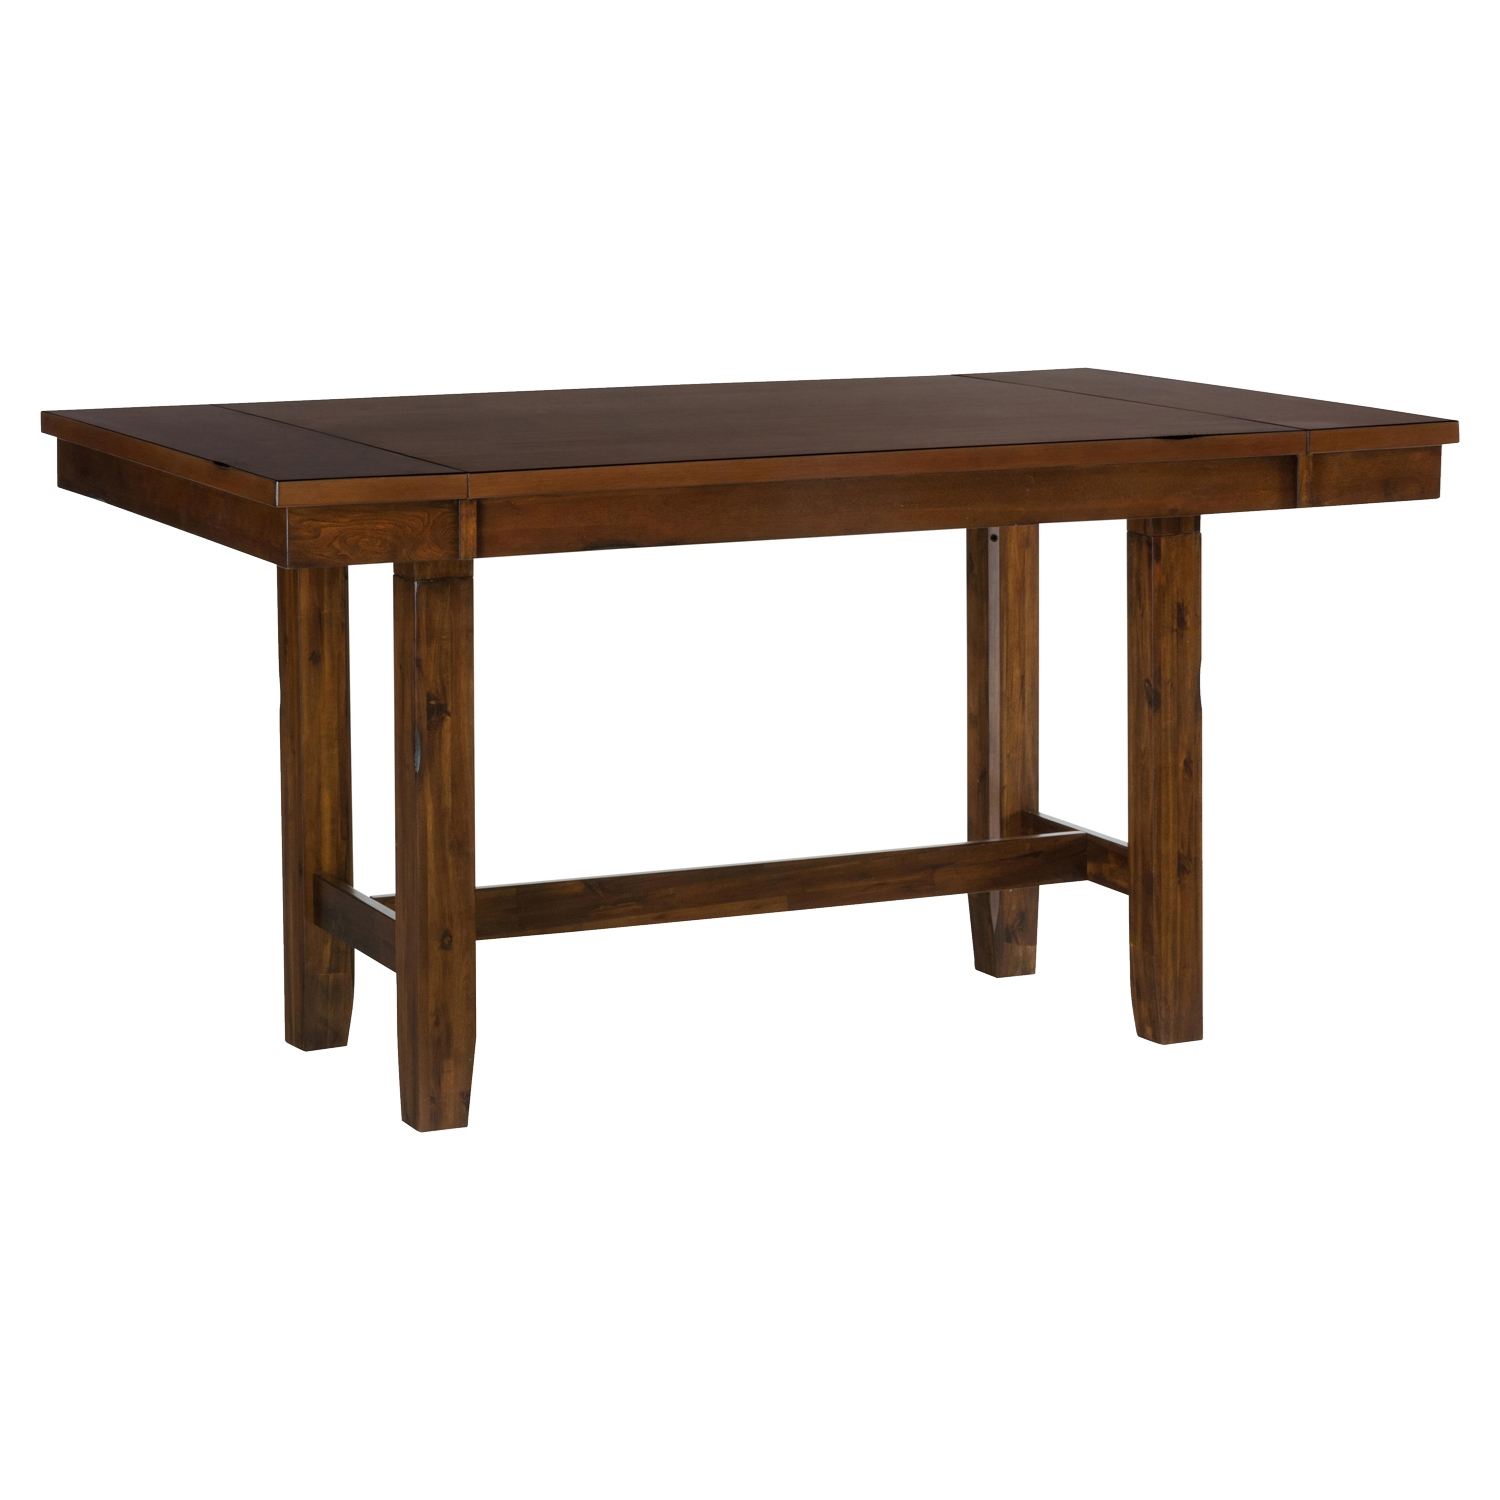 Plantation Extension Counter Height Table - JOFR-505-93